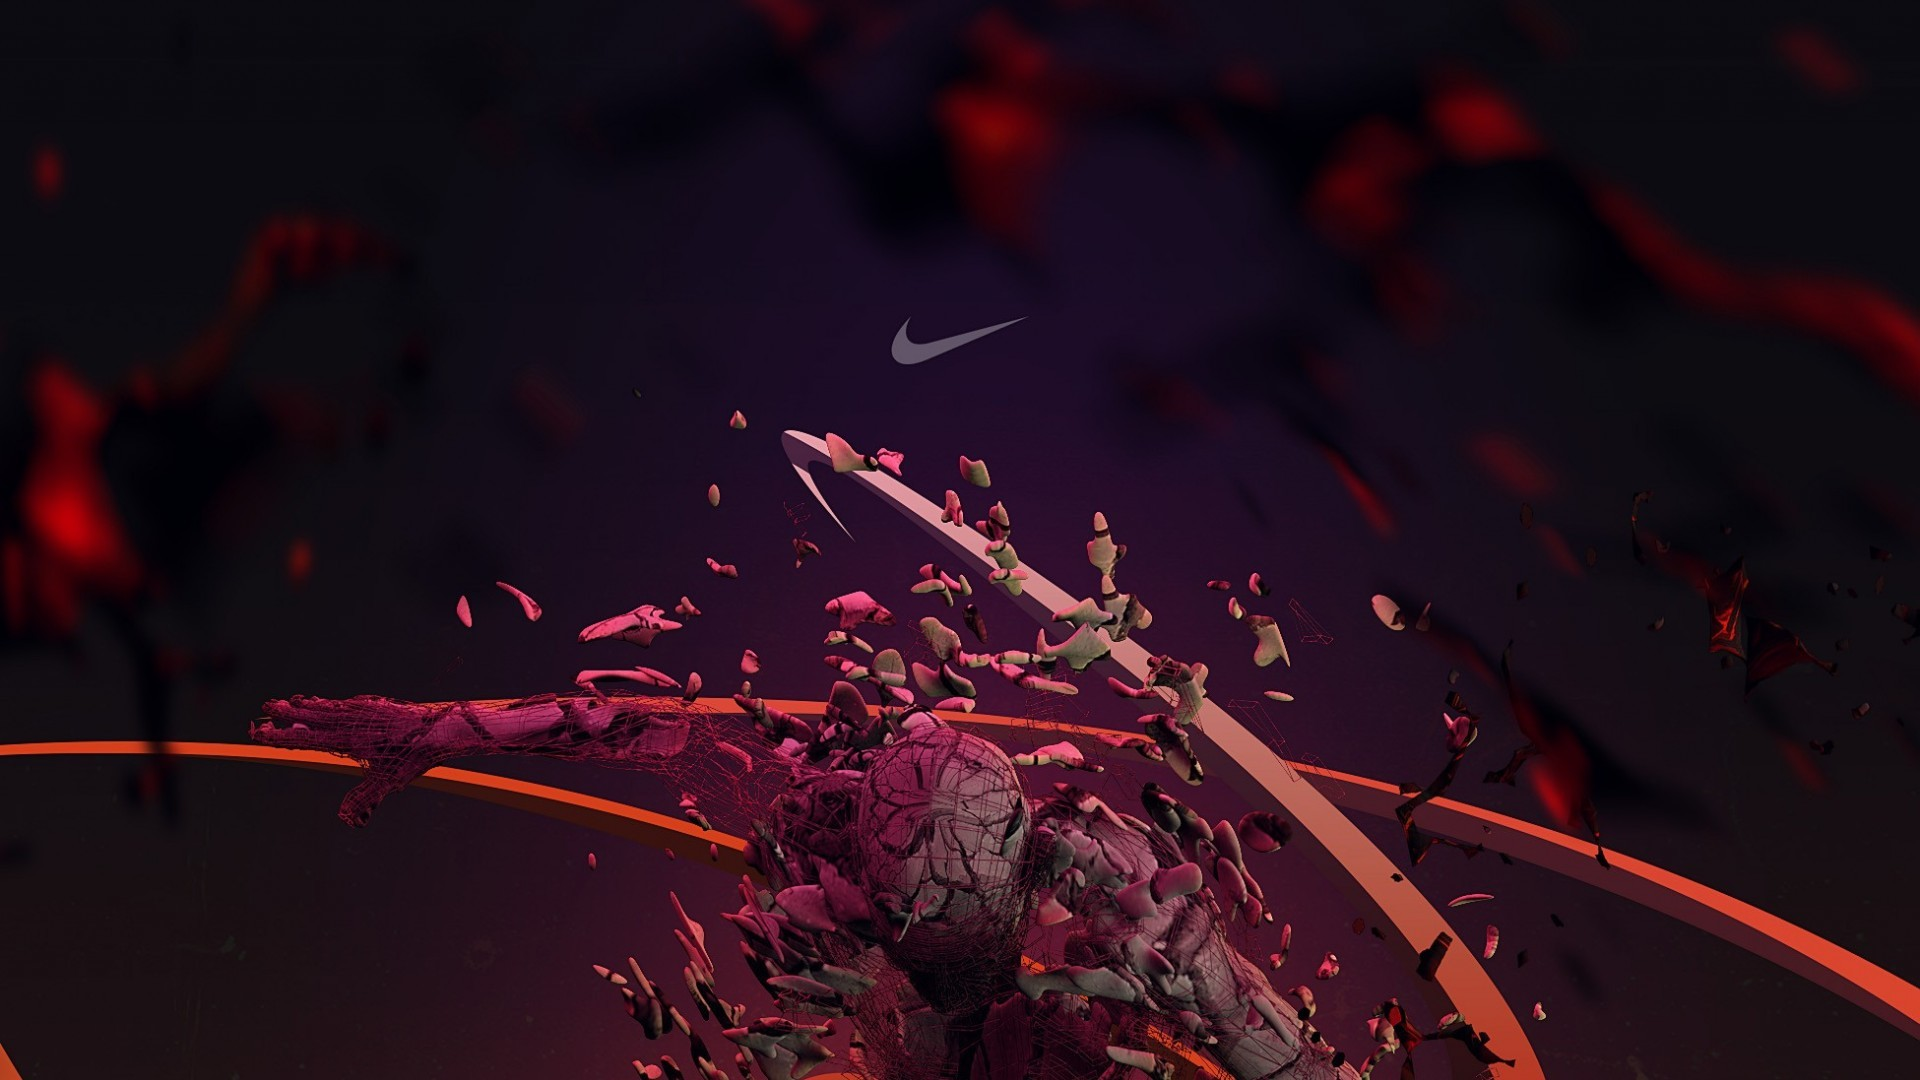 Nike Basketball Wallpaper Hd 76 Images